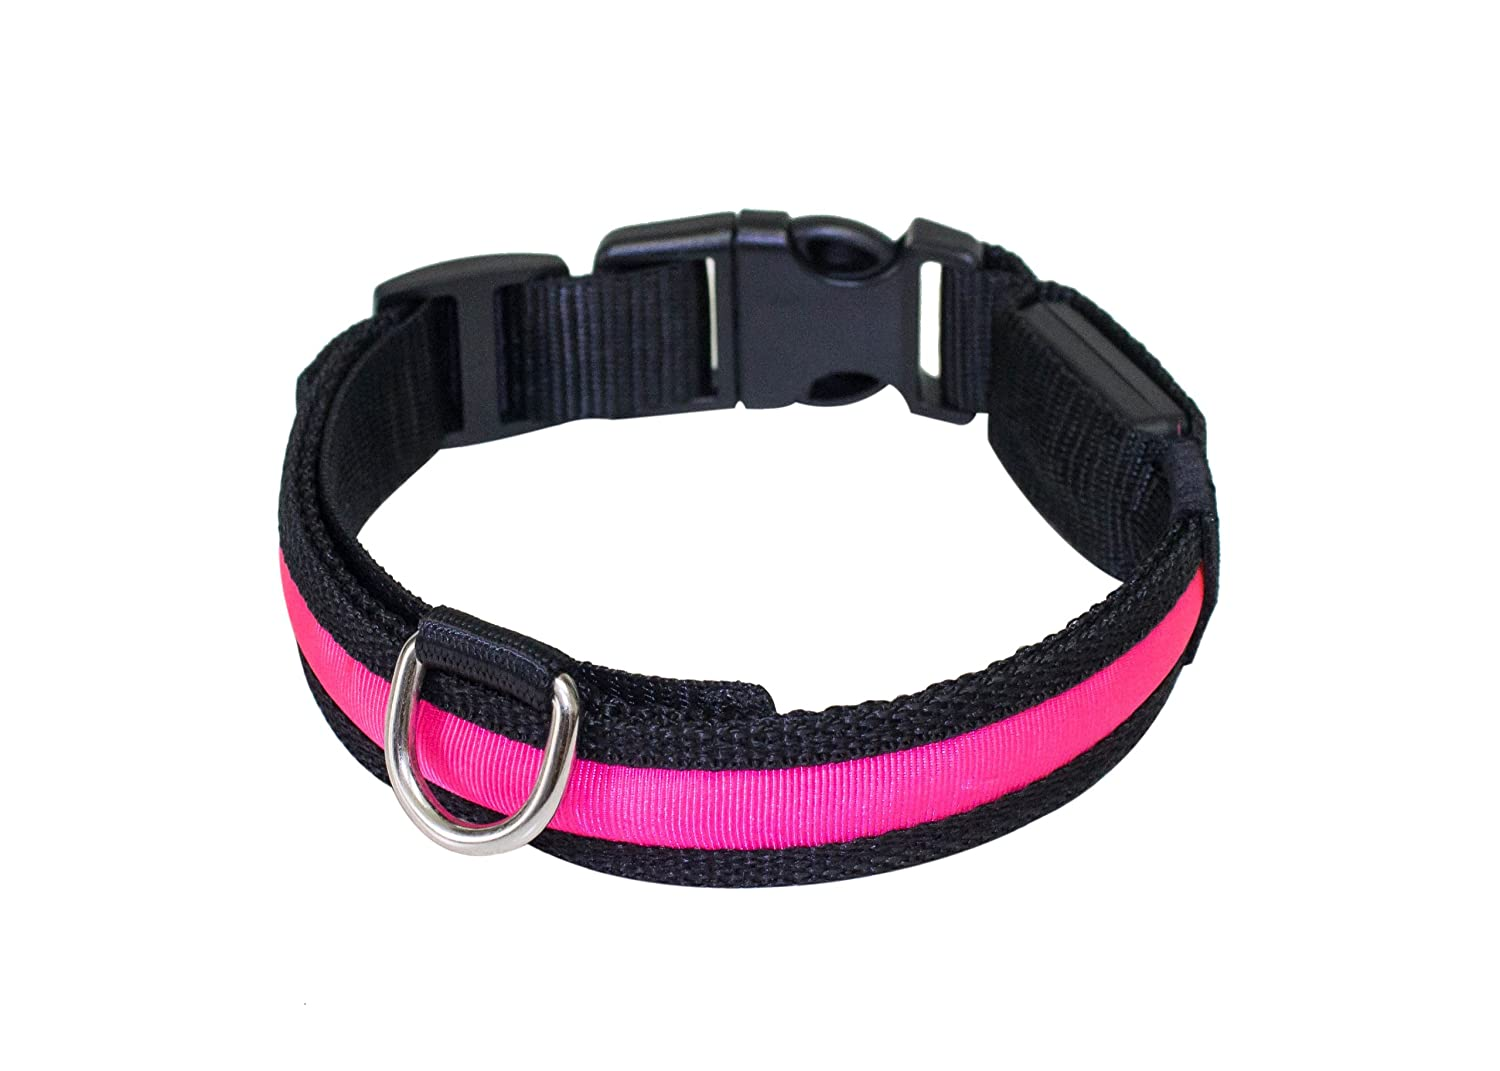 PRECORN Collar para perros luminoso'Zandoo' Collar LED en el color rosa. Tamaño M (40-50 cm)